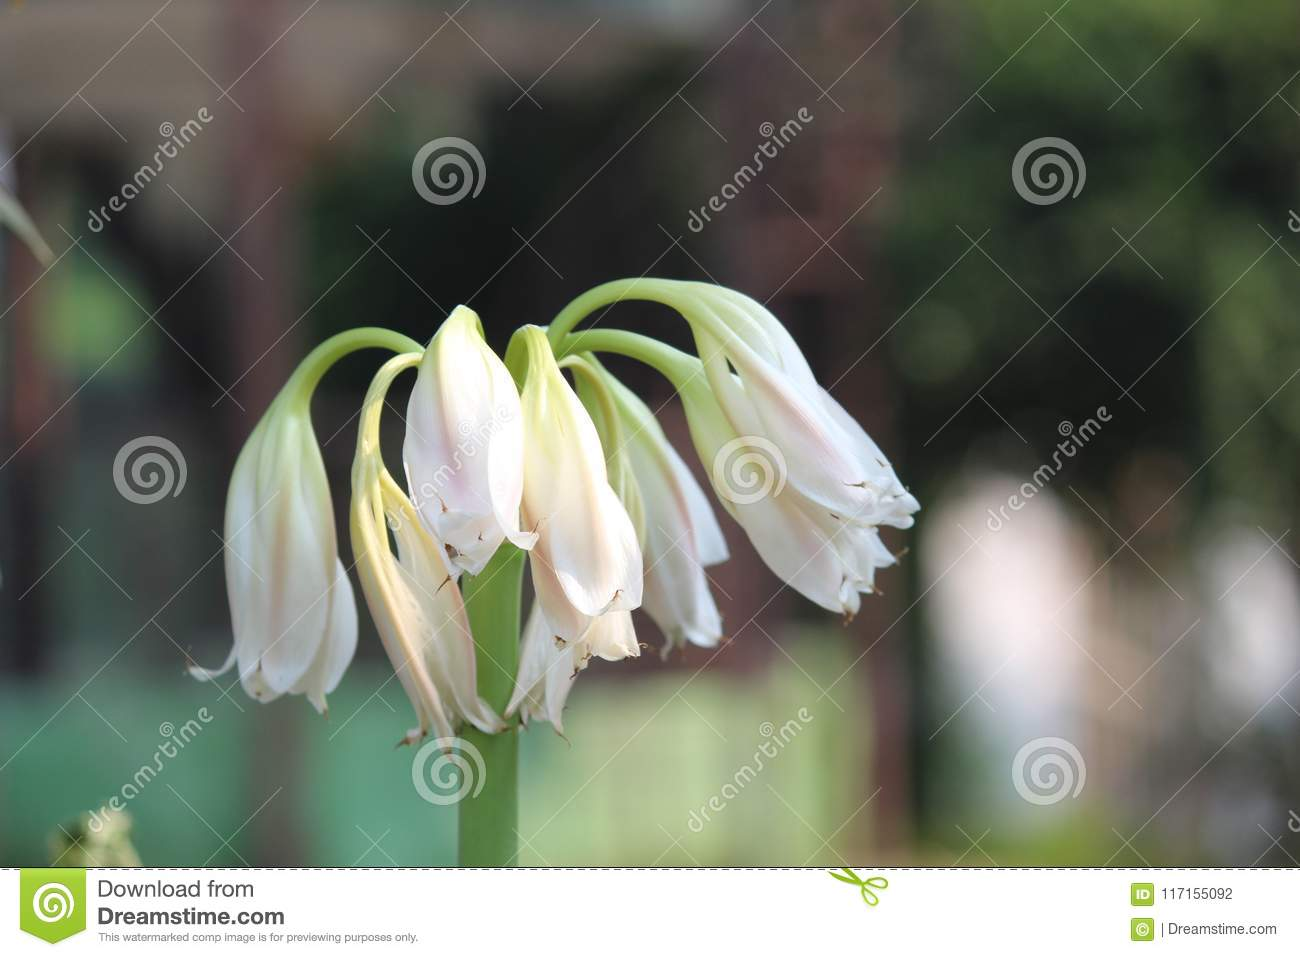 Best flower image use for any purpose stock photo image of makes download best flower image use for any purpose stock photo image of makes purpose izmirmasajfo